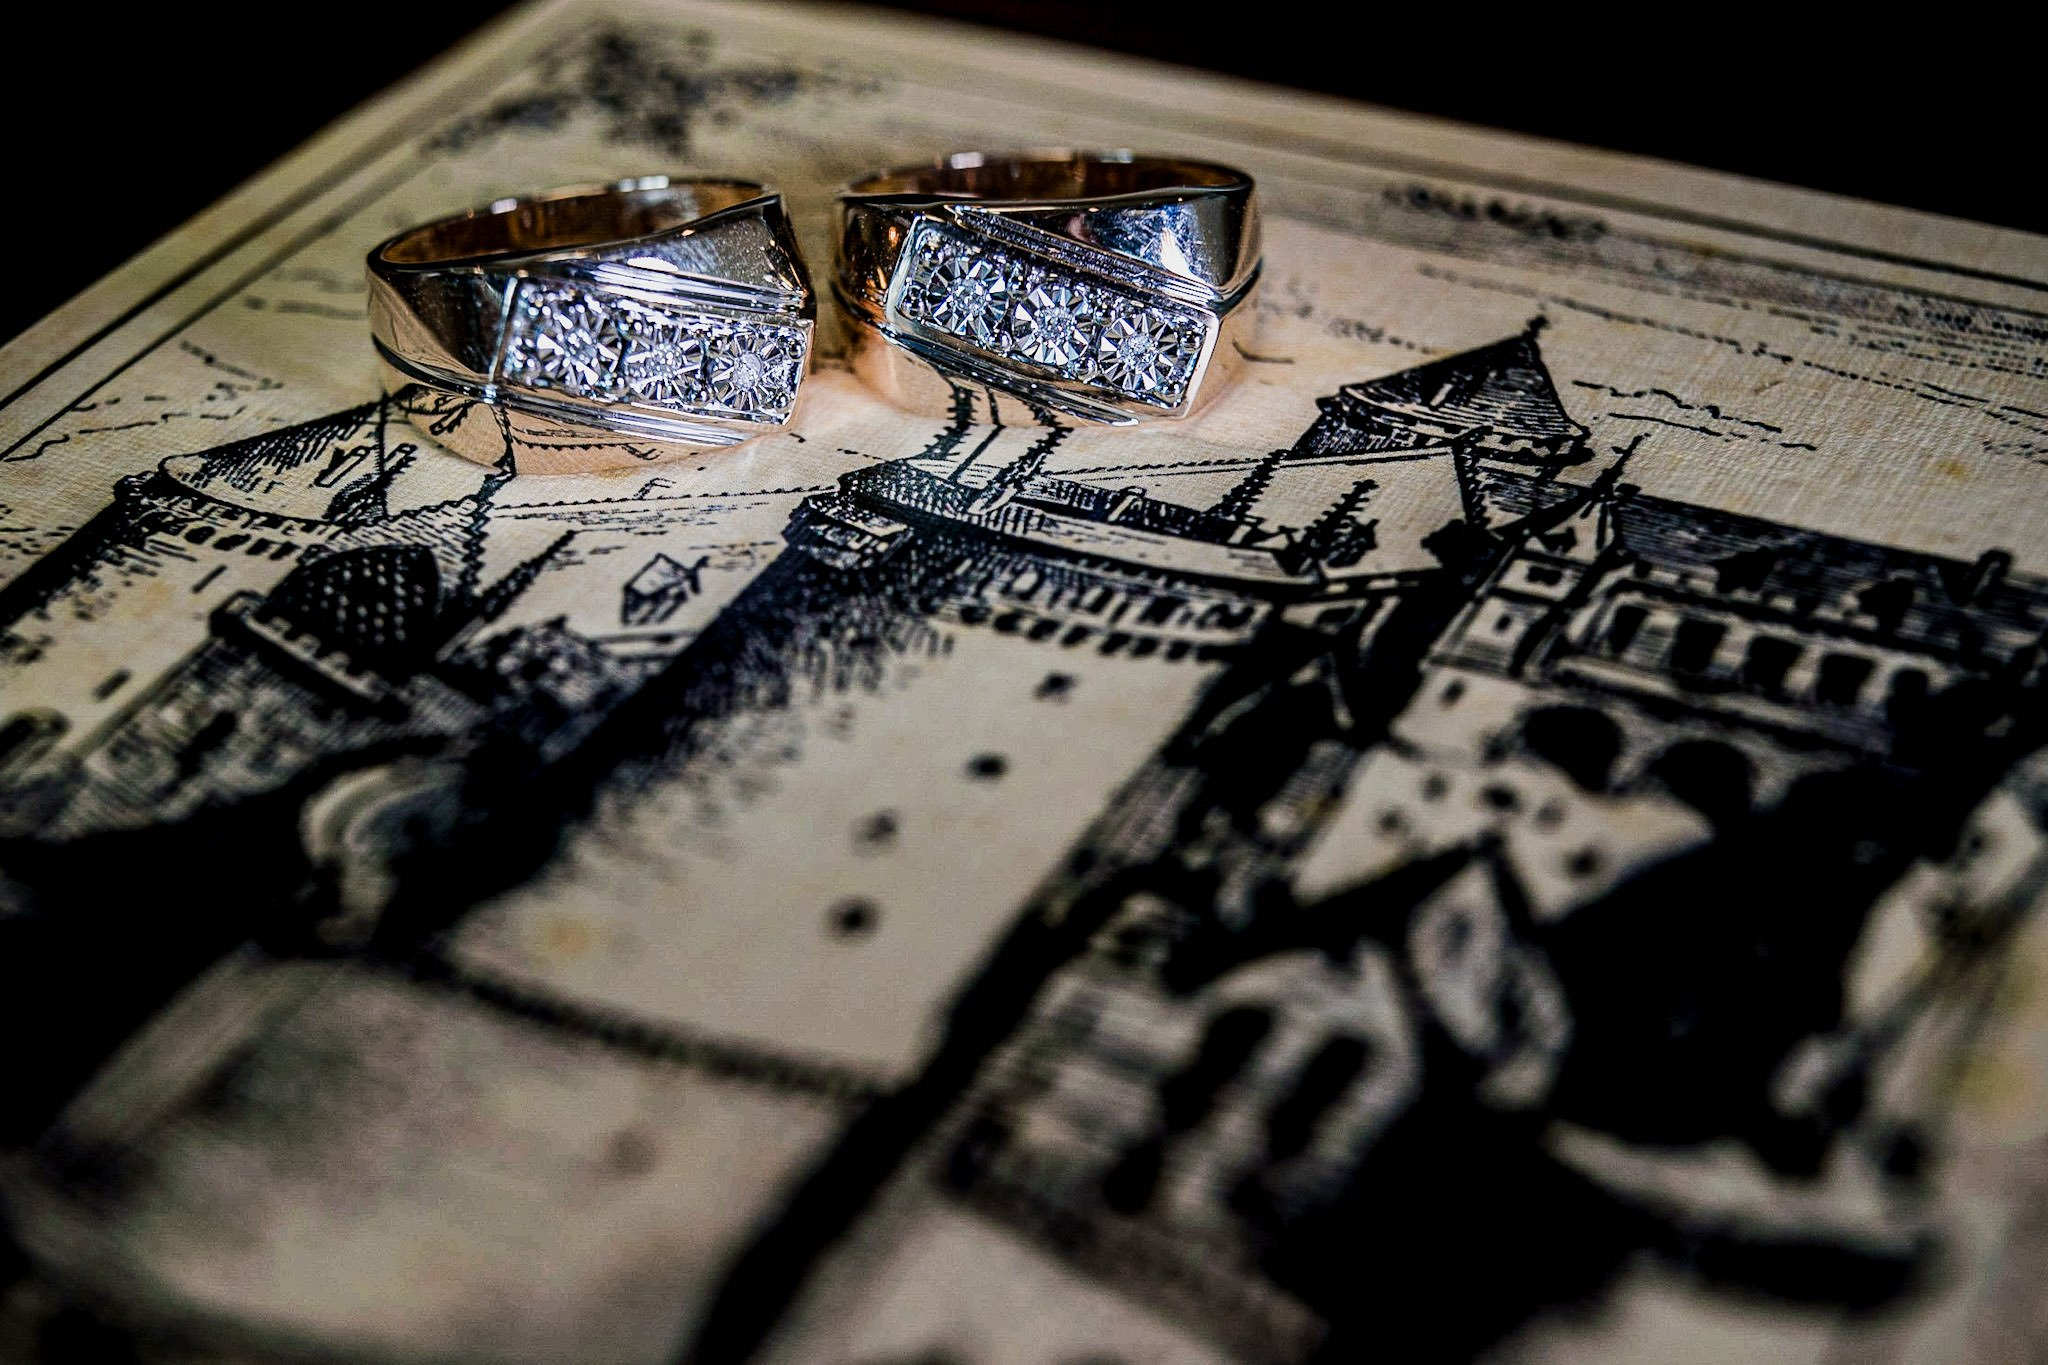 Allerton Castle Knaresborough Hutchinson Weddings Photography the groom and grooms wedding rings on their invite showing a picture of a castle